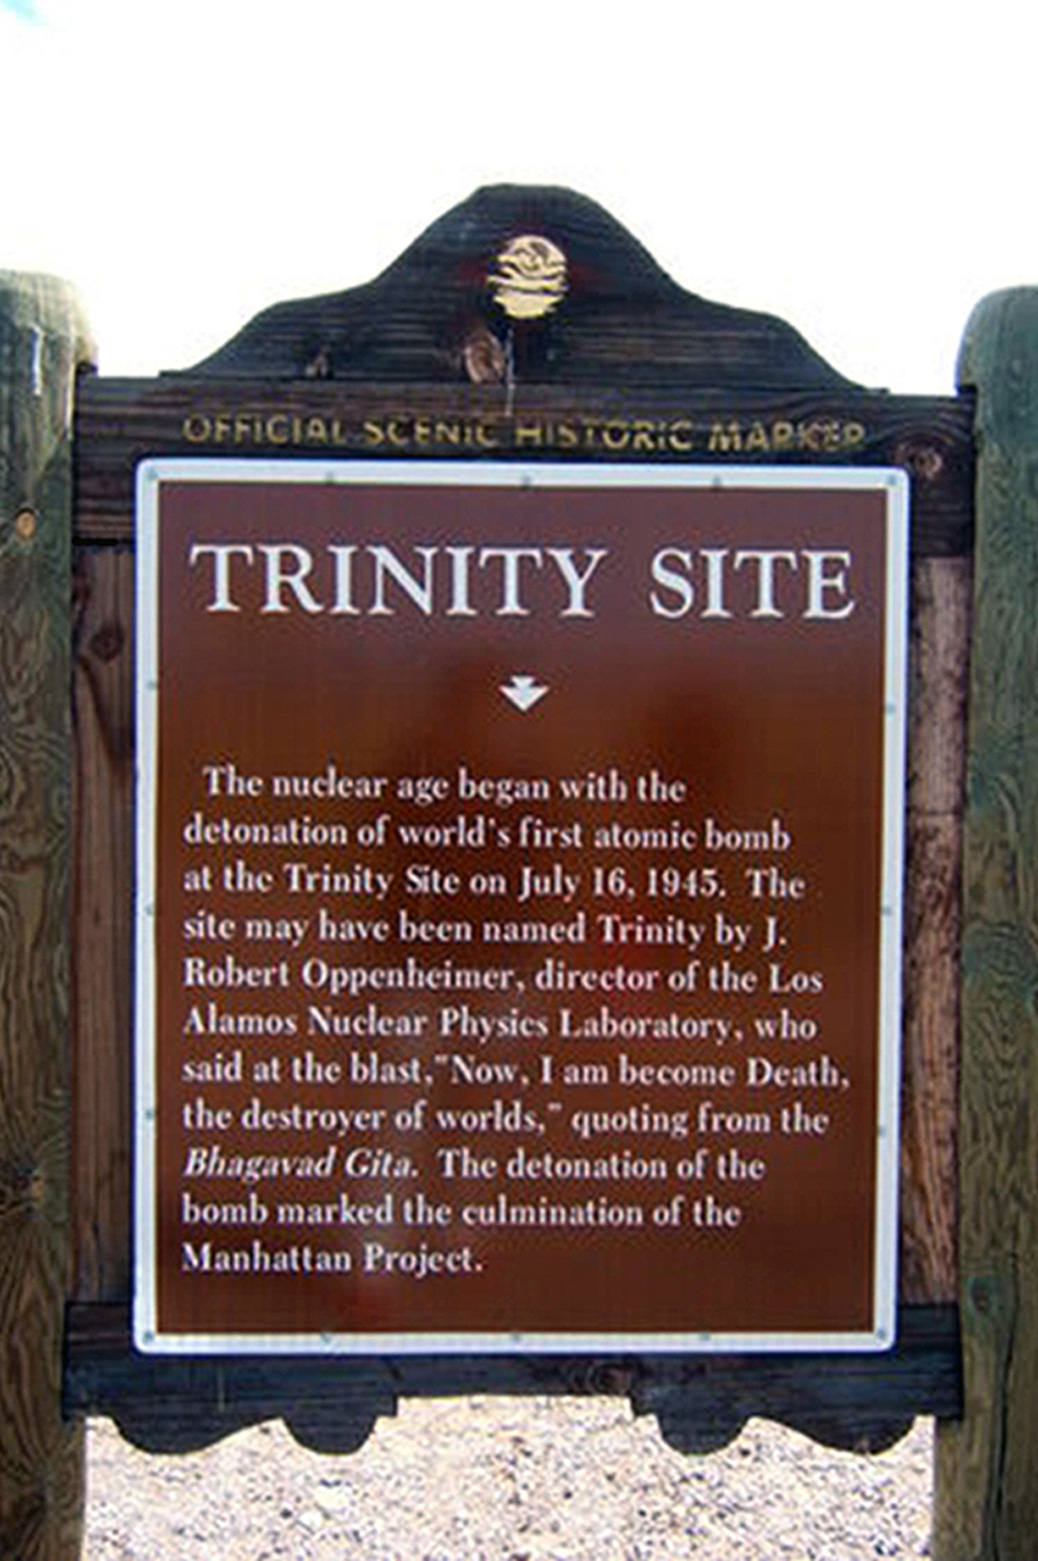 Image of the sign posted at the Trinity Site